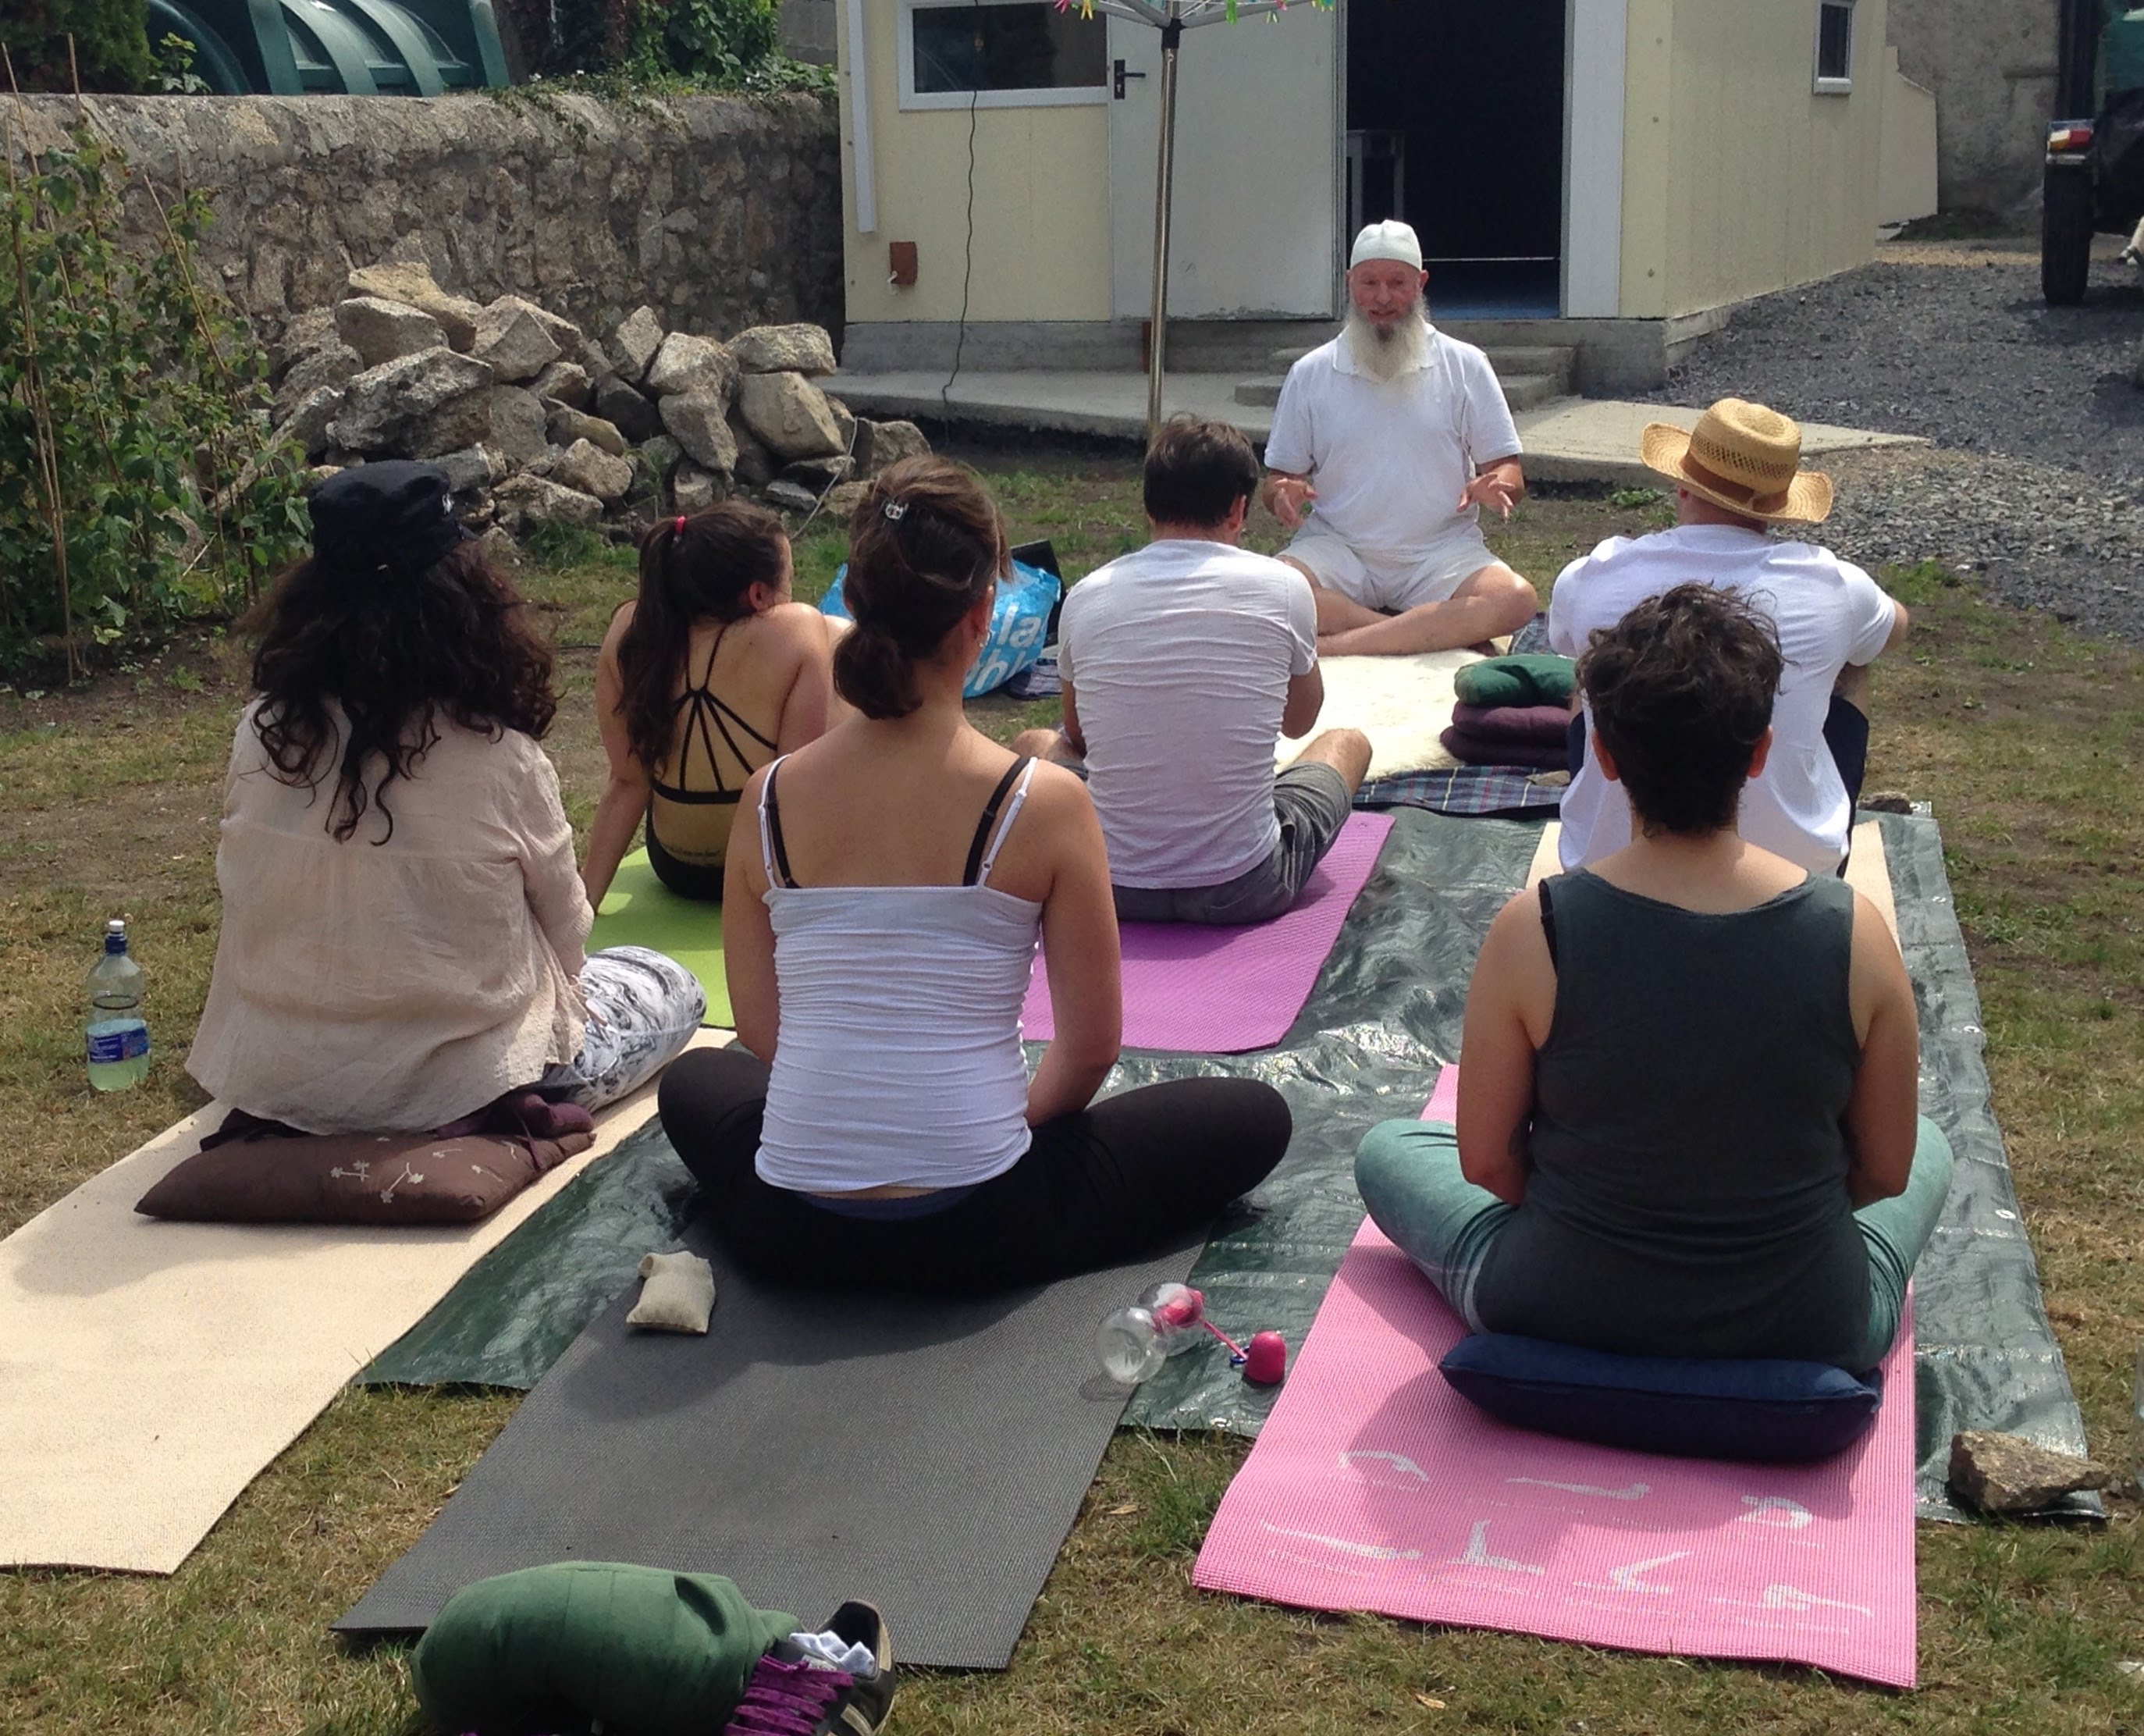 Kundalini Yoga Class outside at 4 Maxwell Road, Rathgar, Dublin 6, Ireland